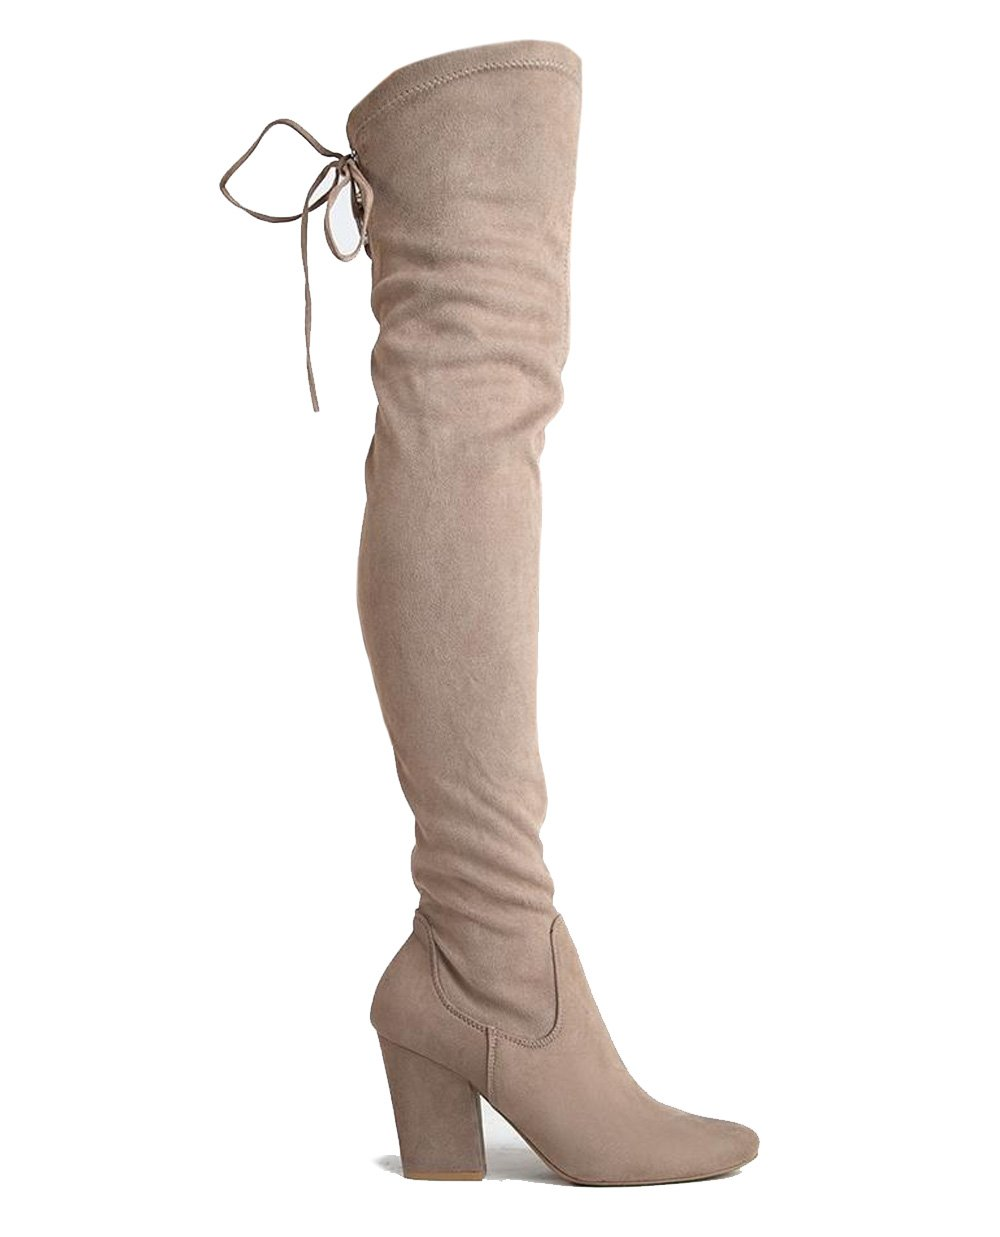 J. Adams Thigh High Block Heel Boot – Pointed Toe Stretchy Over The Knee – Telly